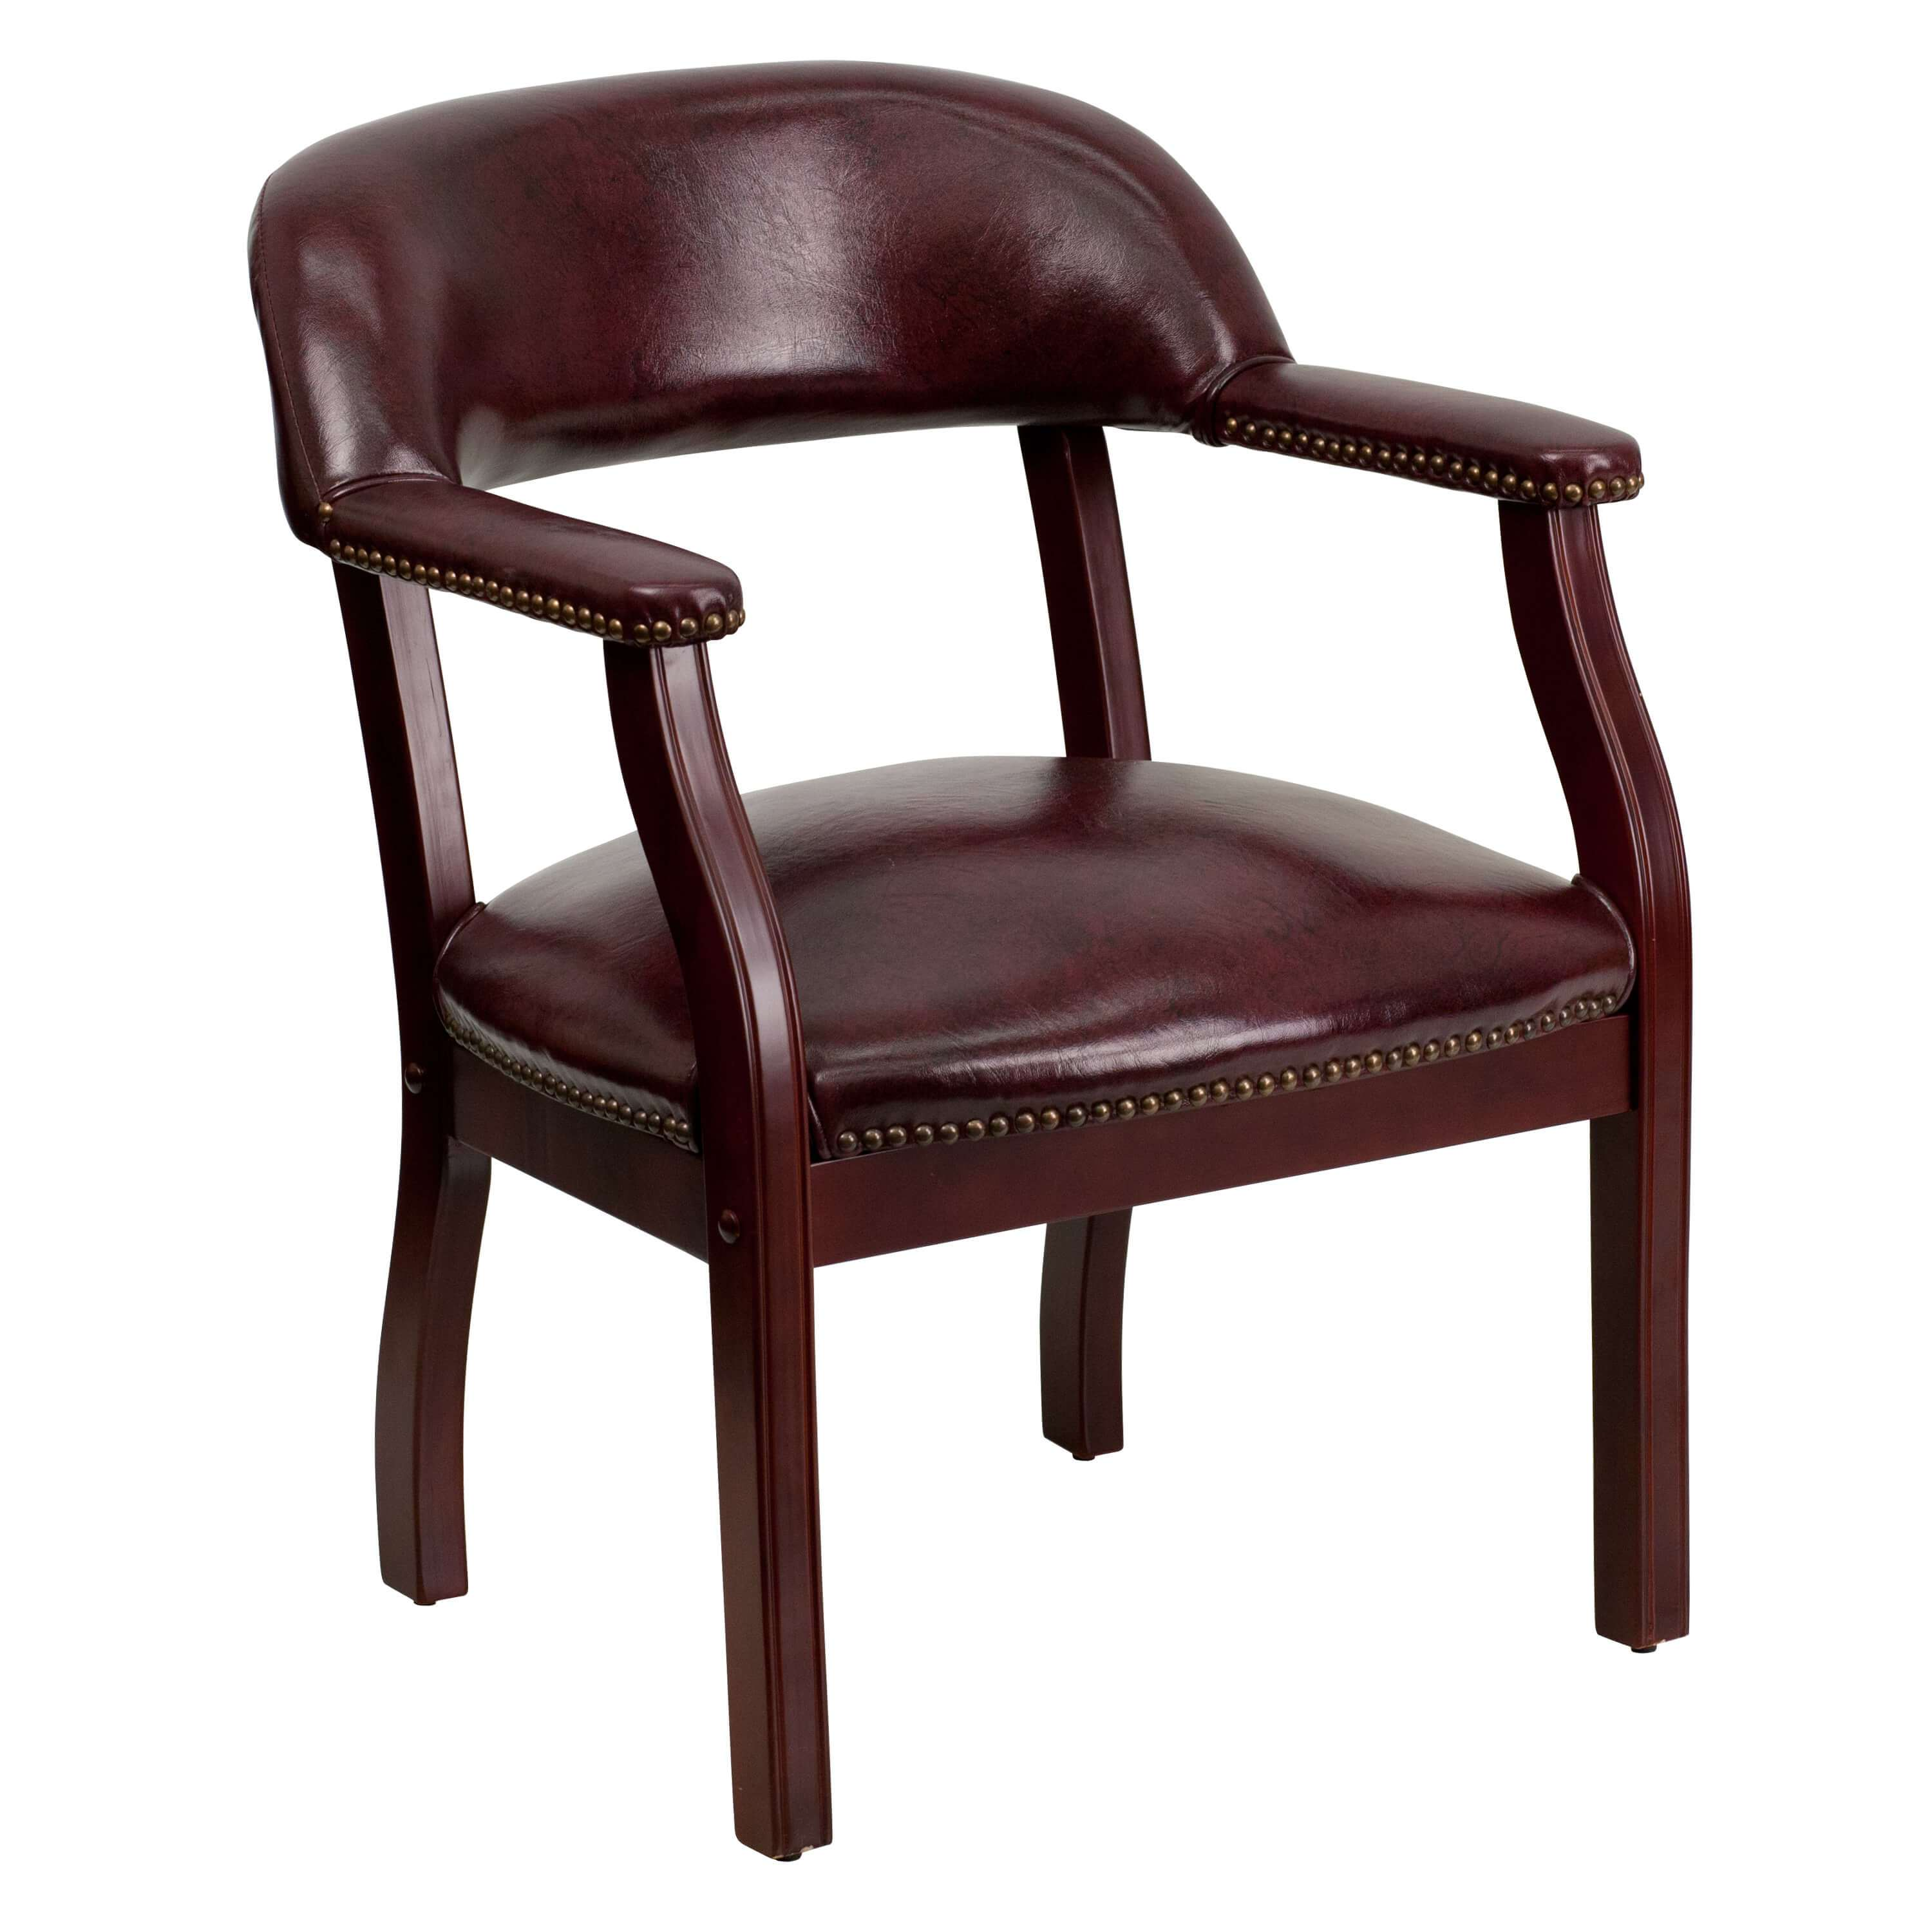 Side chairs with arms CUB B Z105 OXBLOOD GG FLA